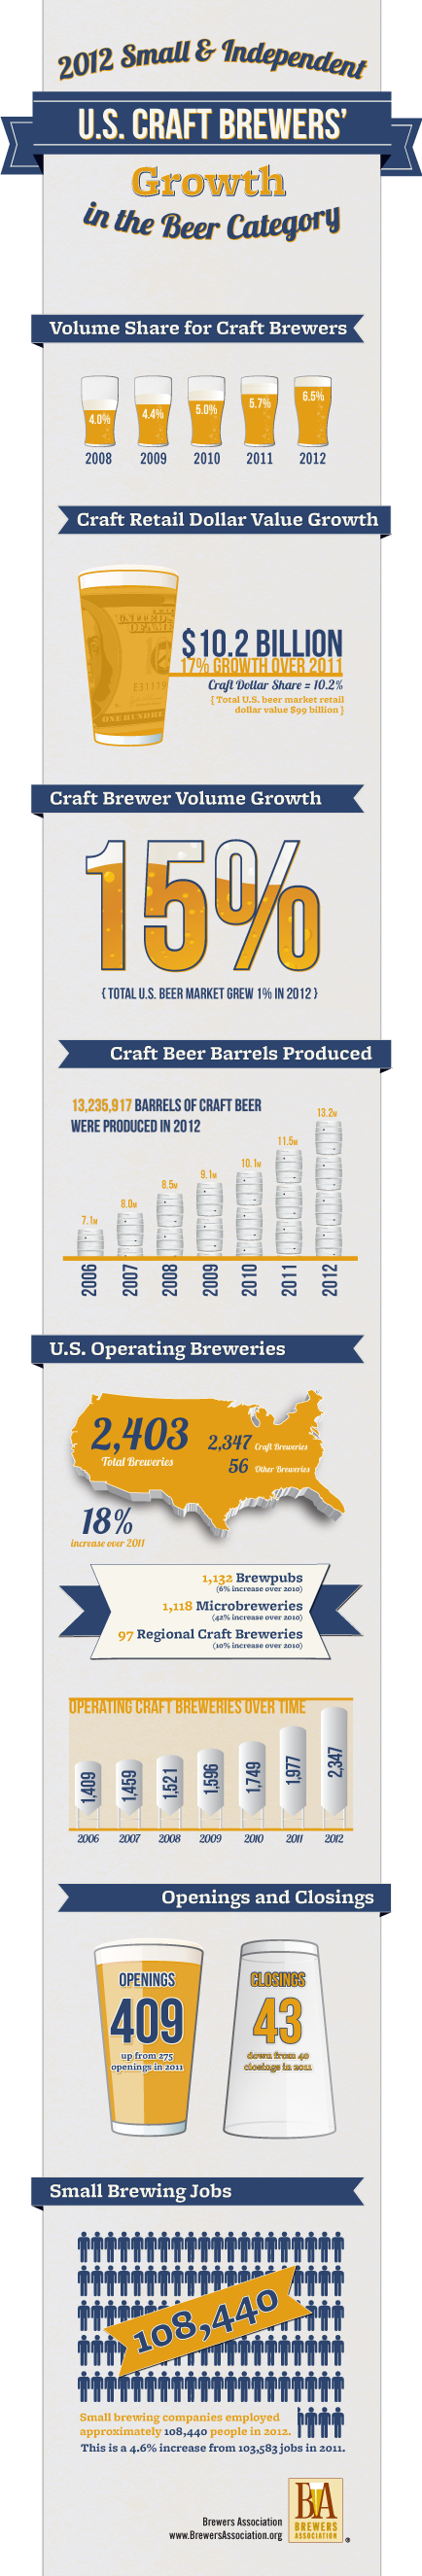 2012 U.S. Small and Independent Craft Brewers' Growth